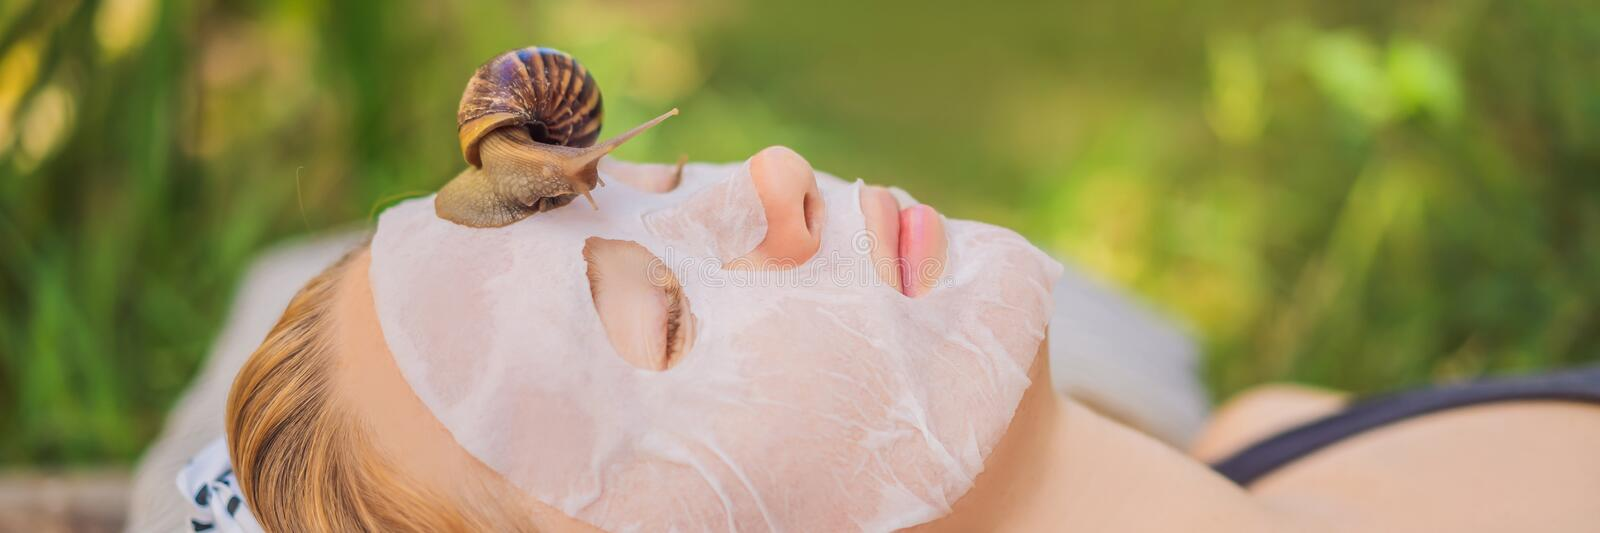 Young woman makes a face mask with snail mucus. Snail crawling on a face mask BANNER, LONG FORMAT. Young woman makes a face mask with snail mucus. Snail crawling stock photos